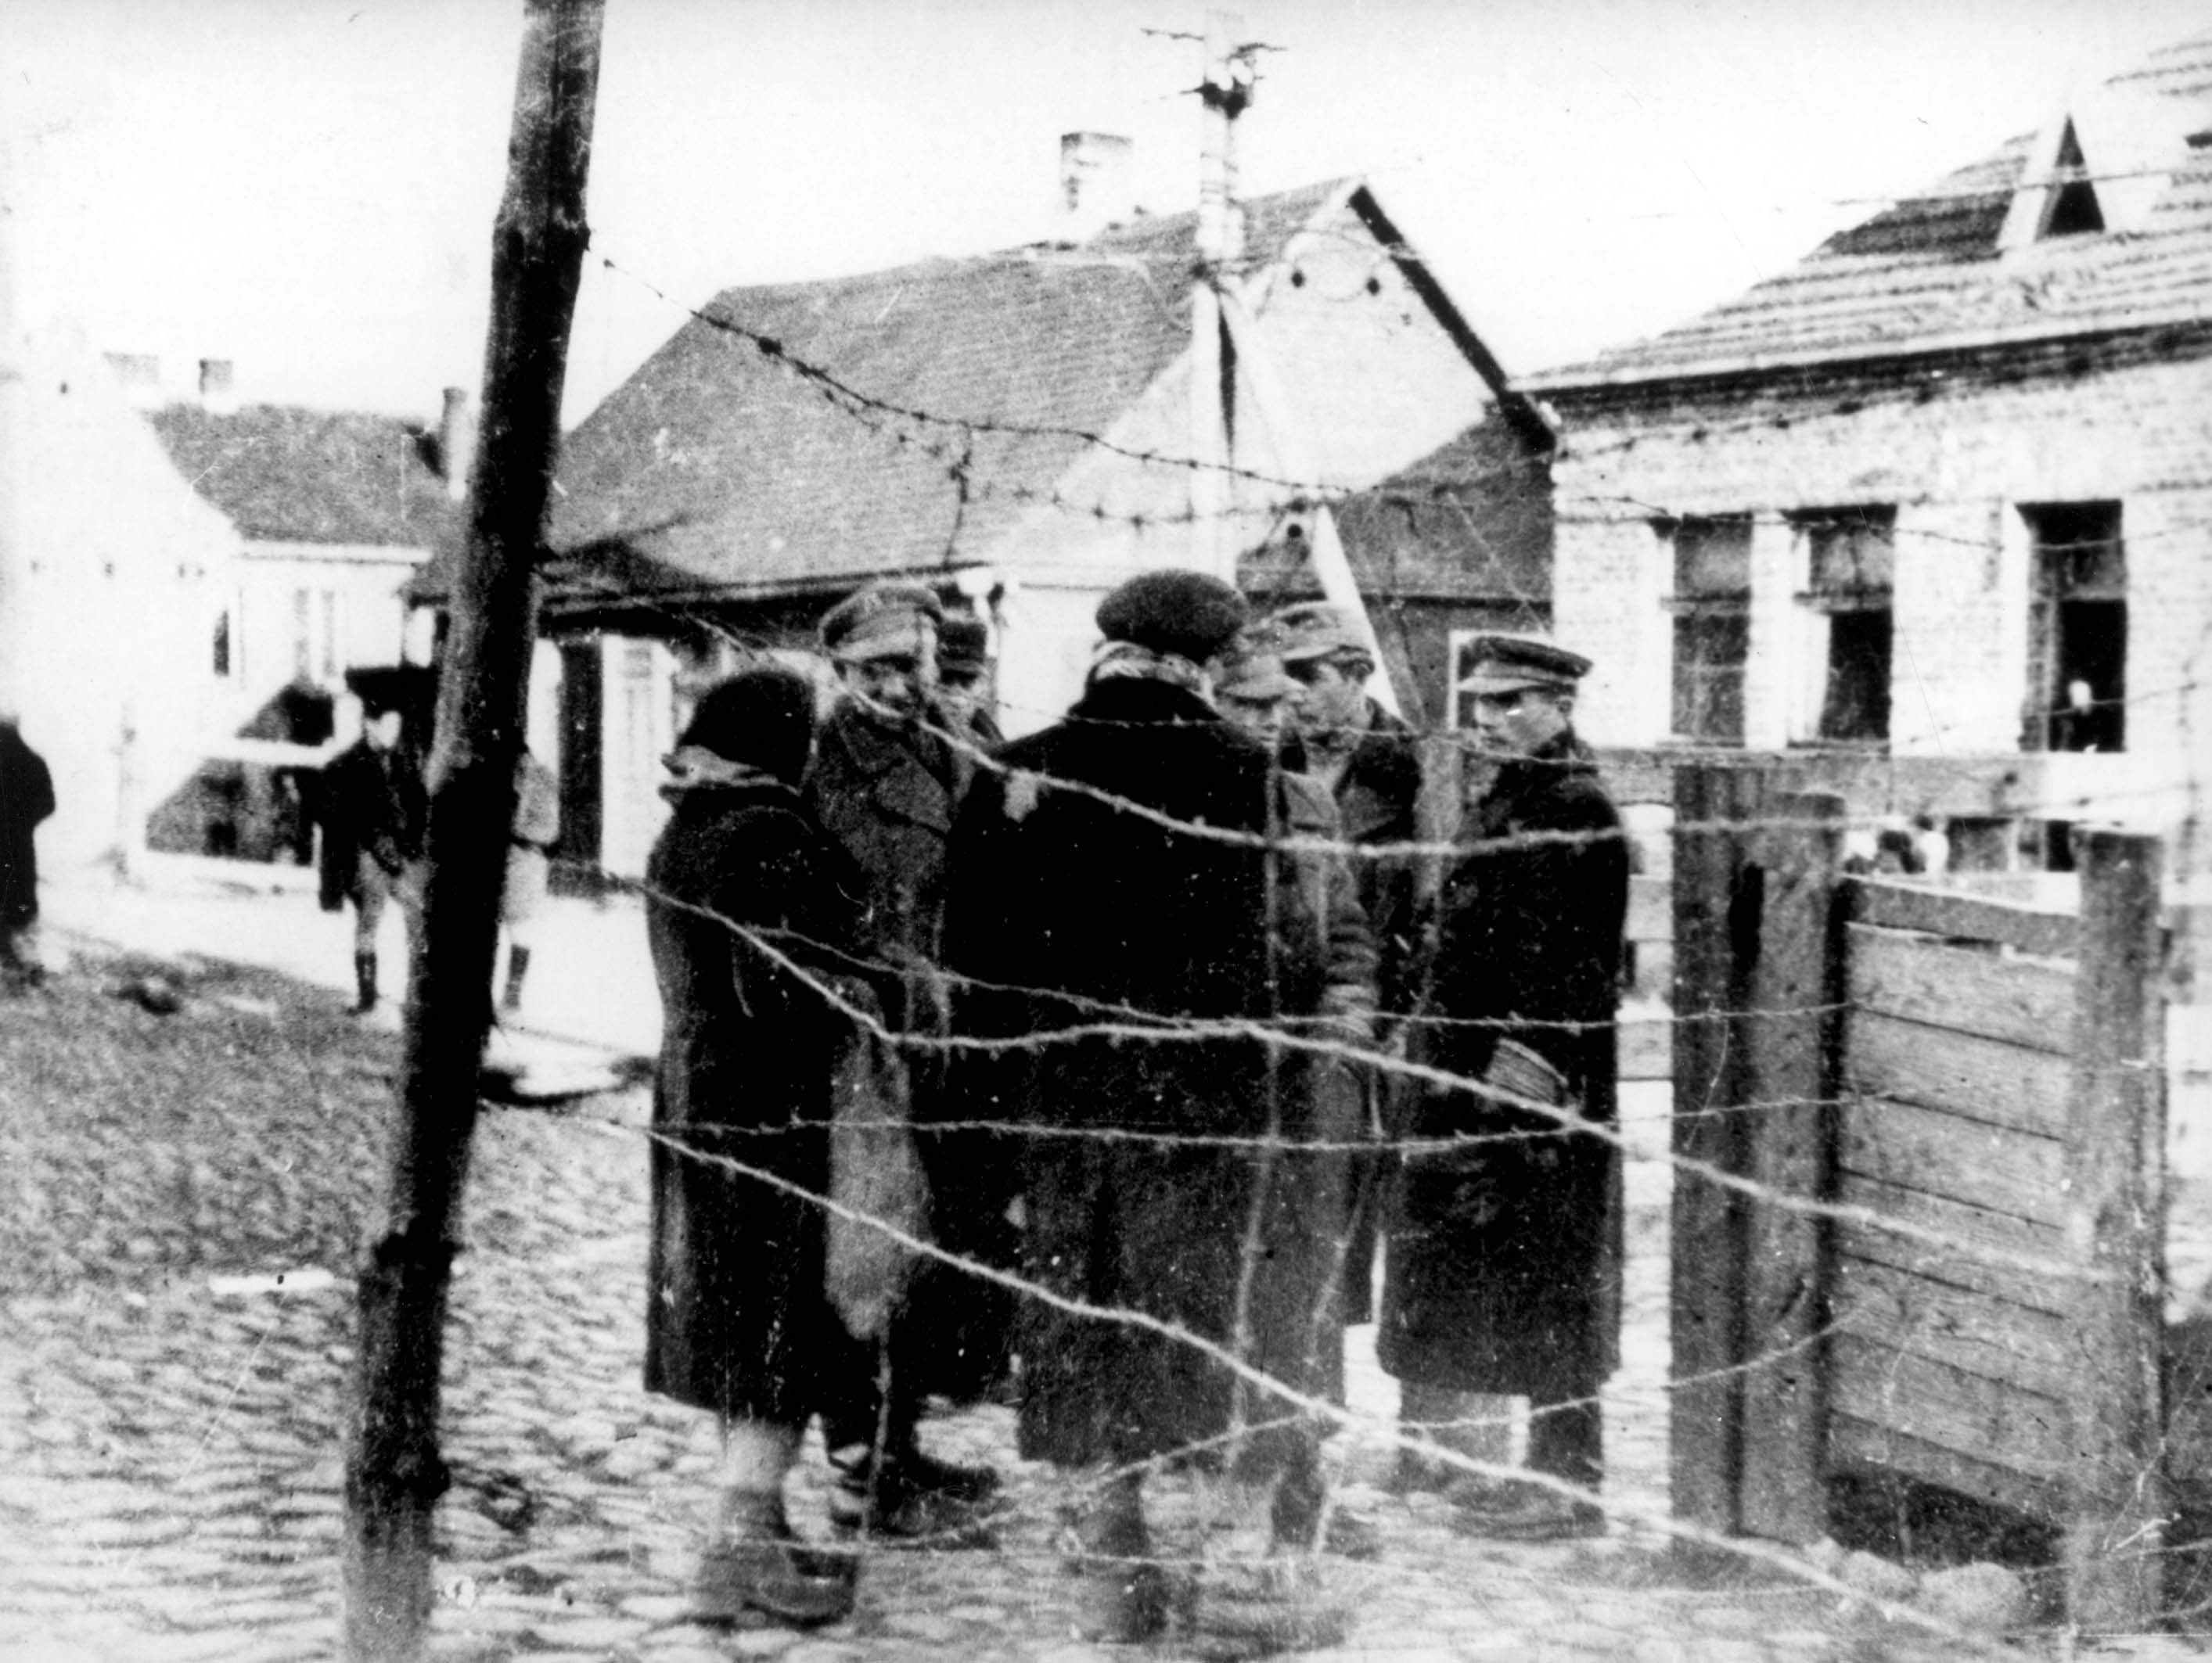 Kovno, Lithuania, A group of people standing beside a barbed wire fence.